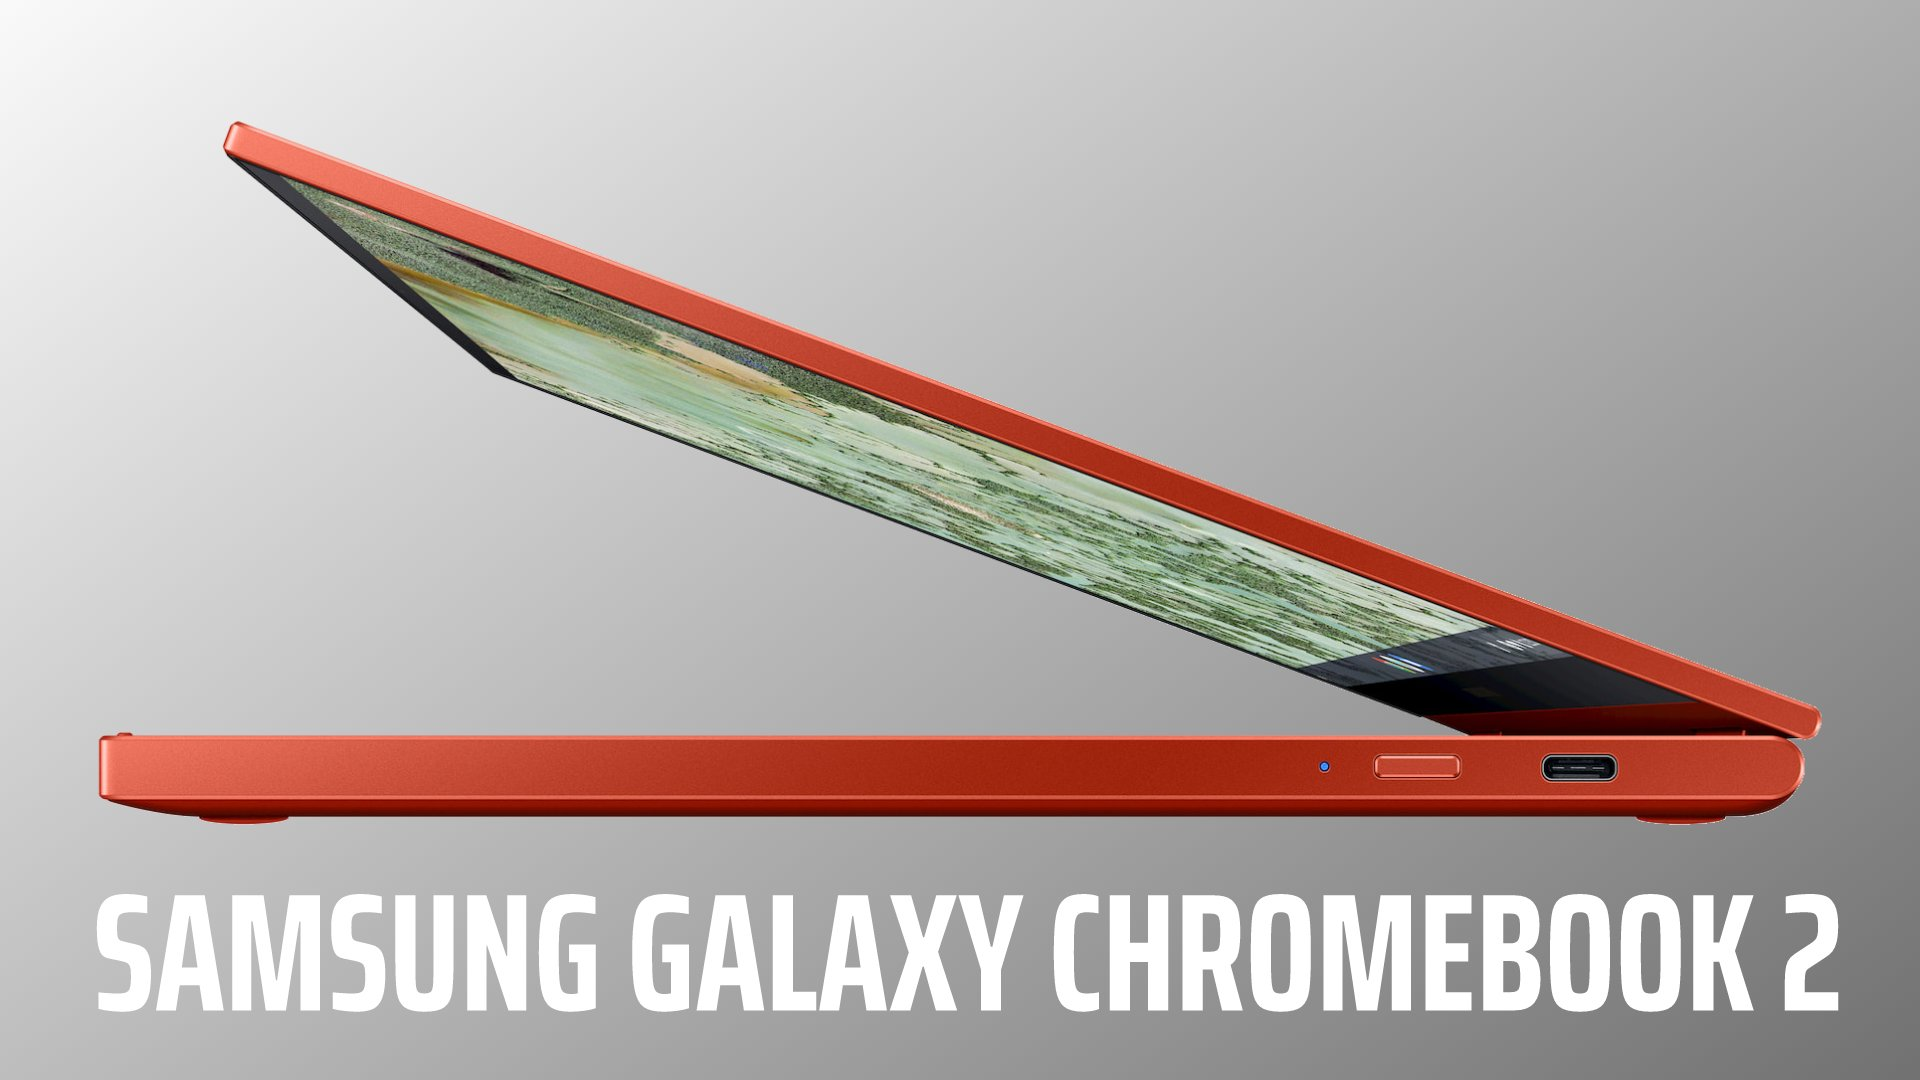 This is the Samsung Galaxy Chromebook 2